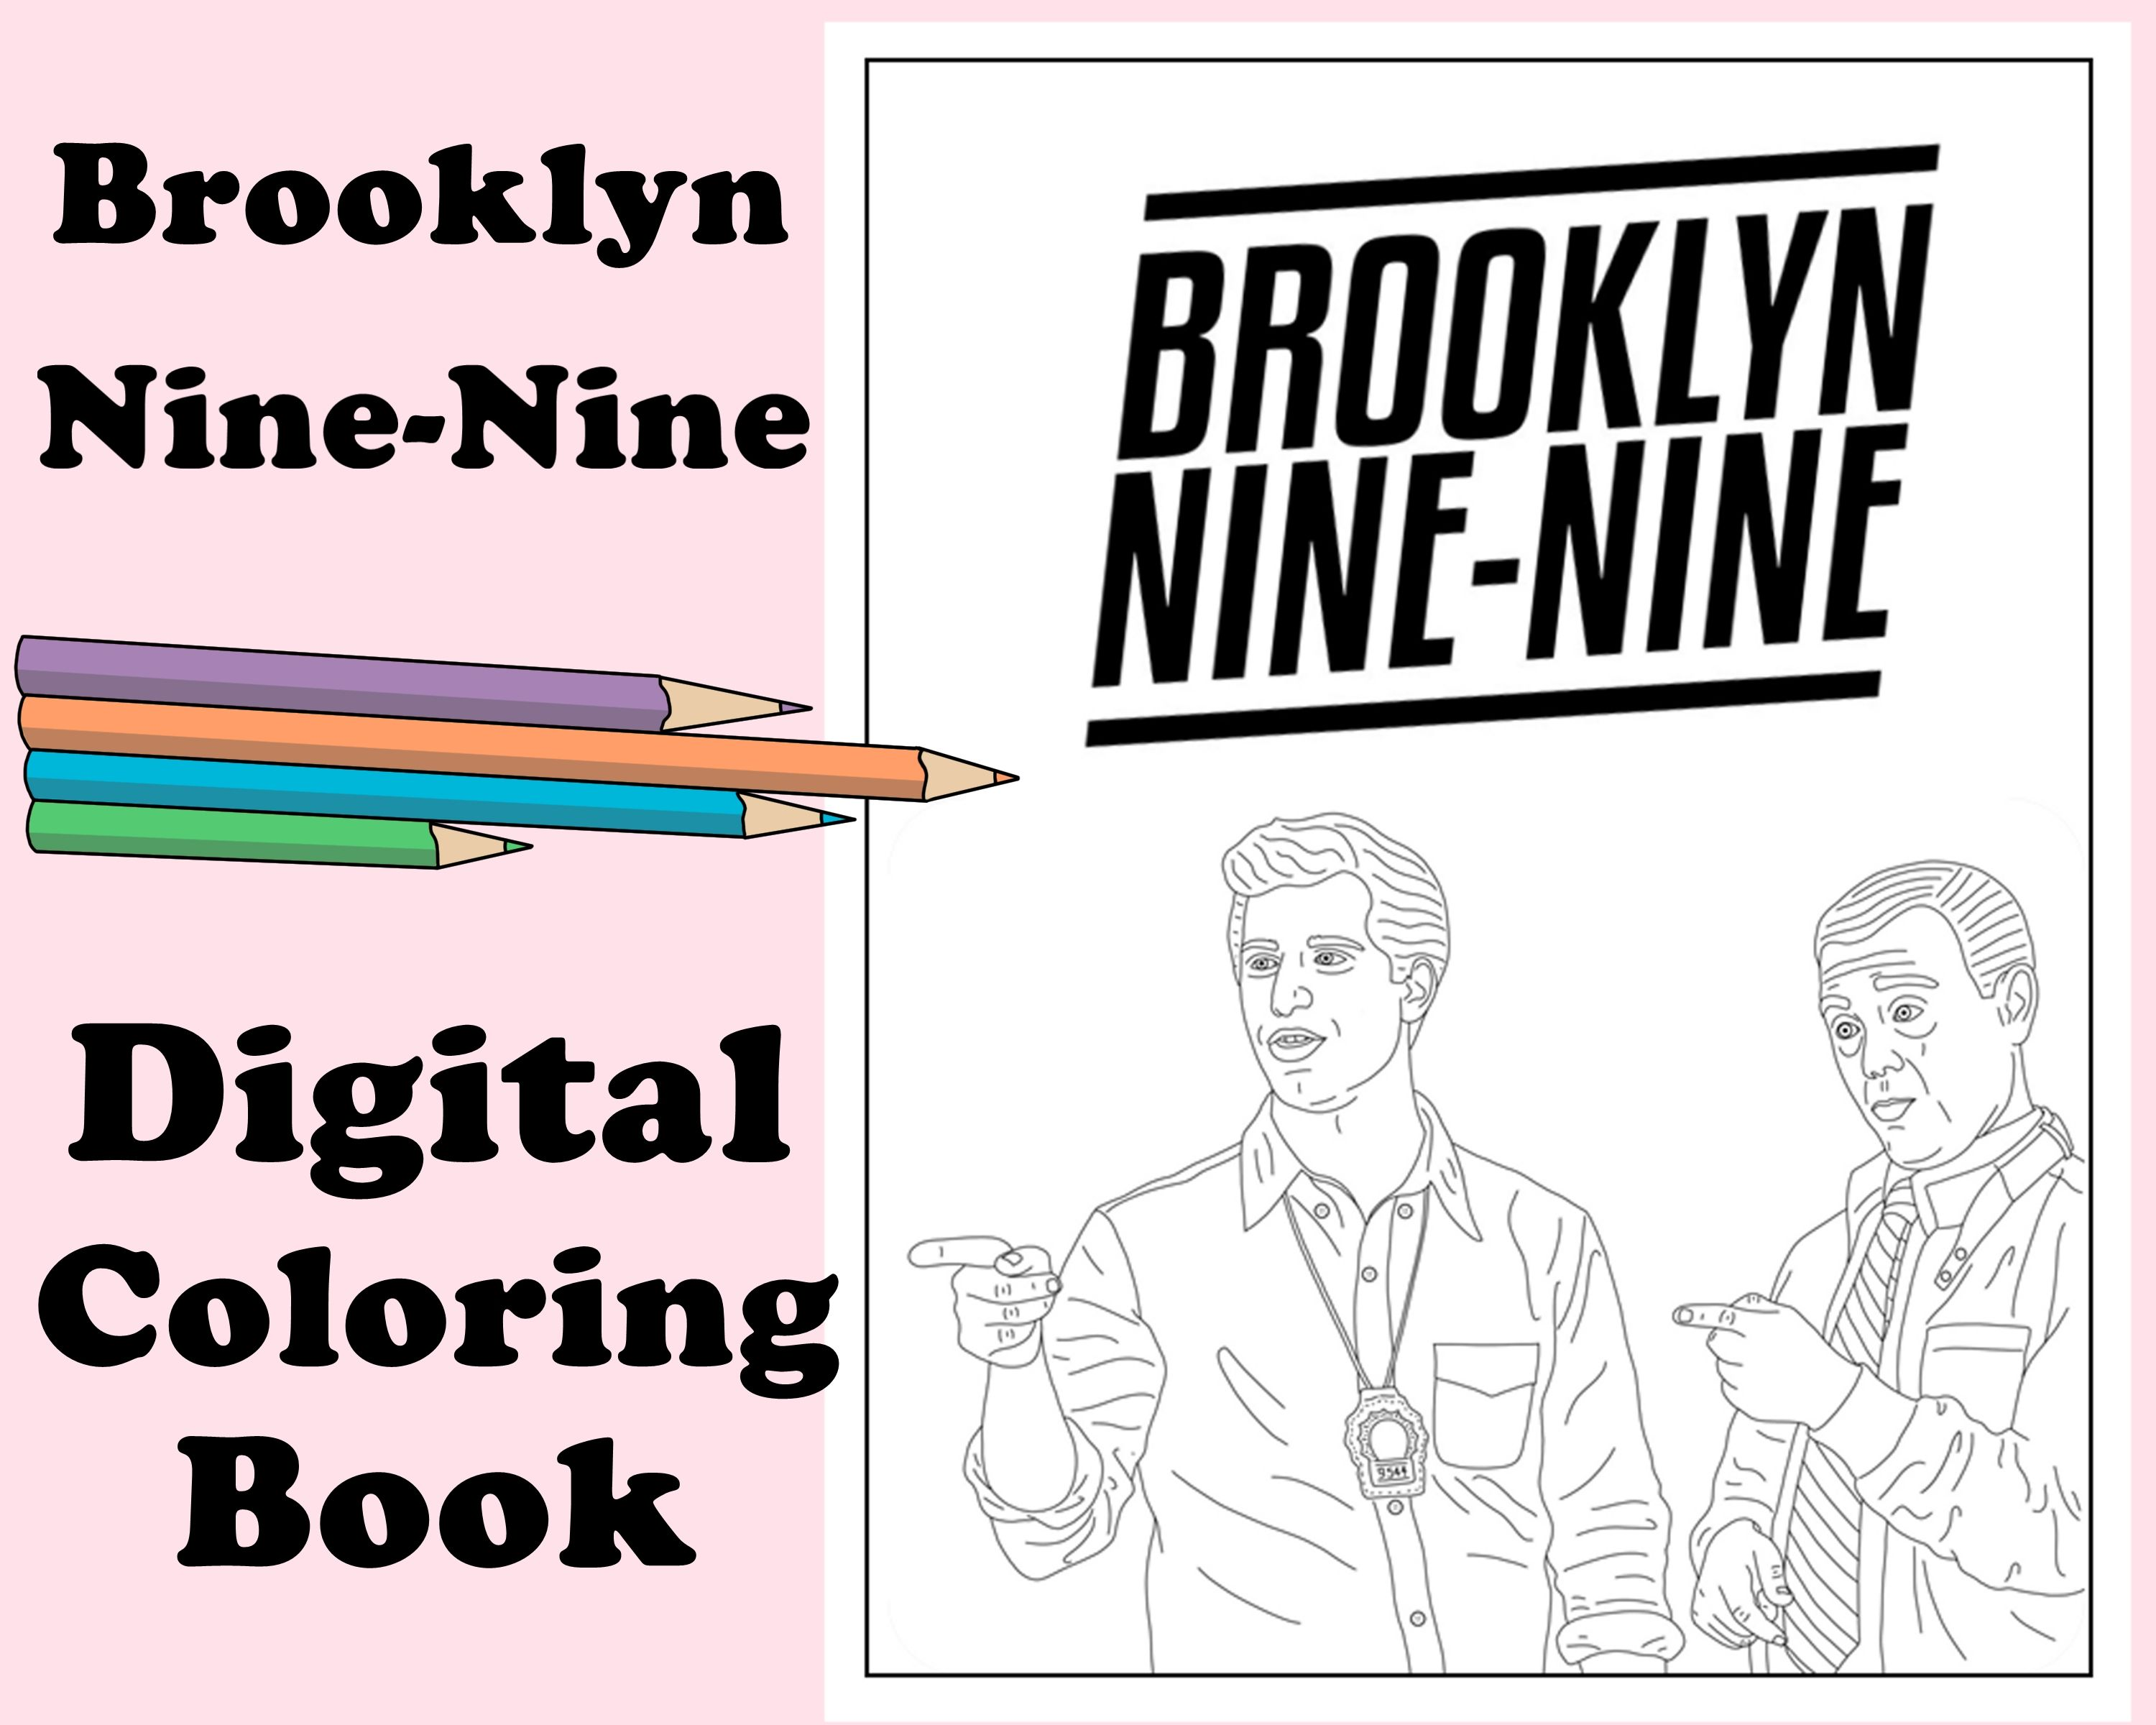 Brooklyn Nine Nine Digital Coloring Book Instant Print Pdf Travel Or Rainy Day Activity Secret Santa Gift Art Therapy Coloring Pages In 2021 Coloring Books Brooklyn Nine Nine Coloring Pages